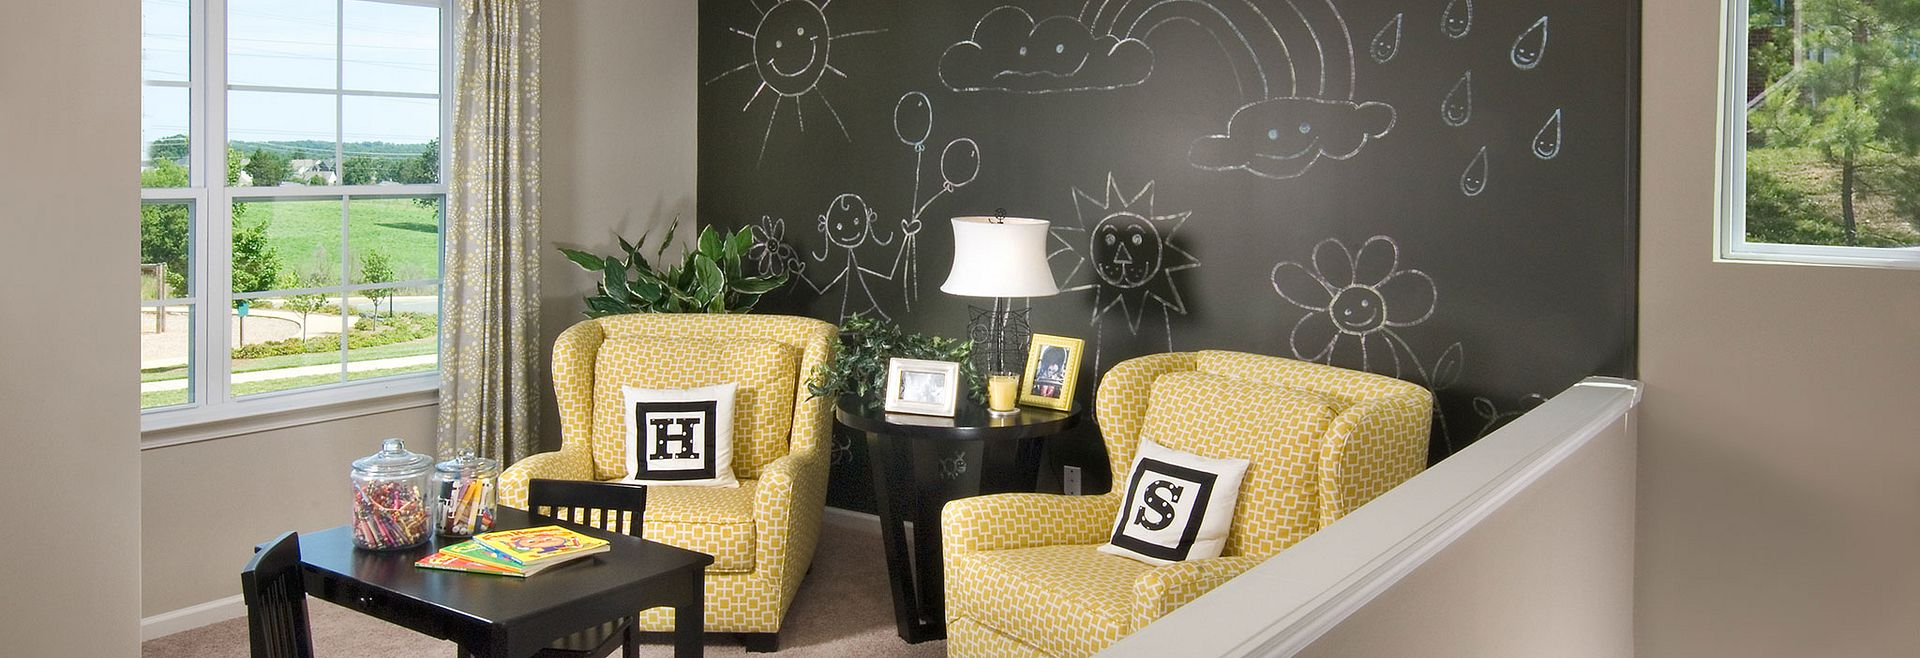 Loft with chalkboard accent wall and 2 chairs and table